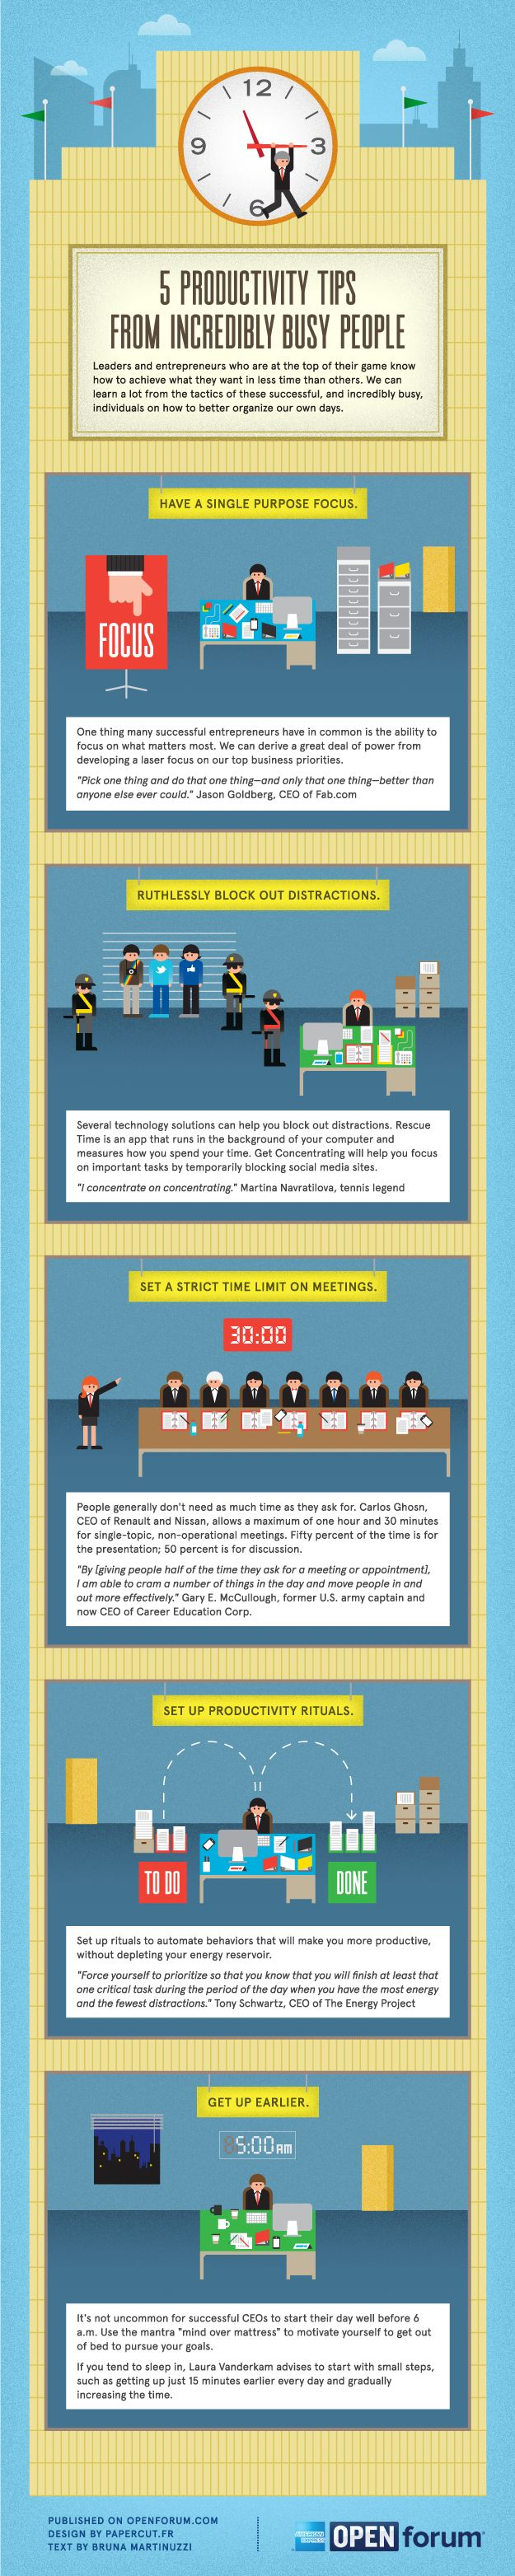 5 Productivity Tips From Incredibly Busy People #Infographic #Business